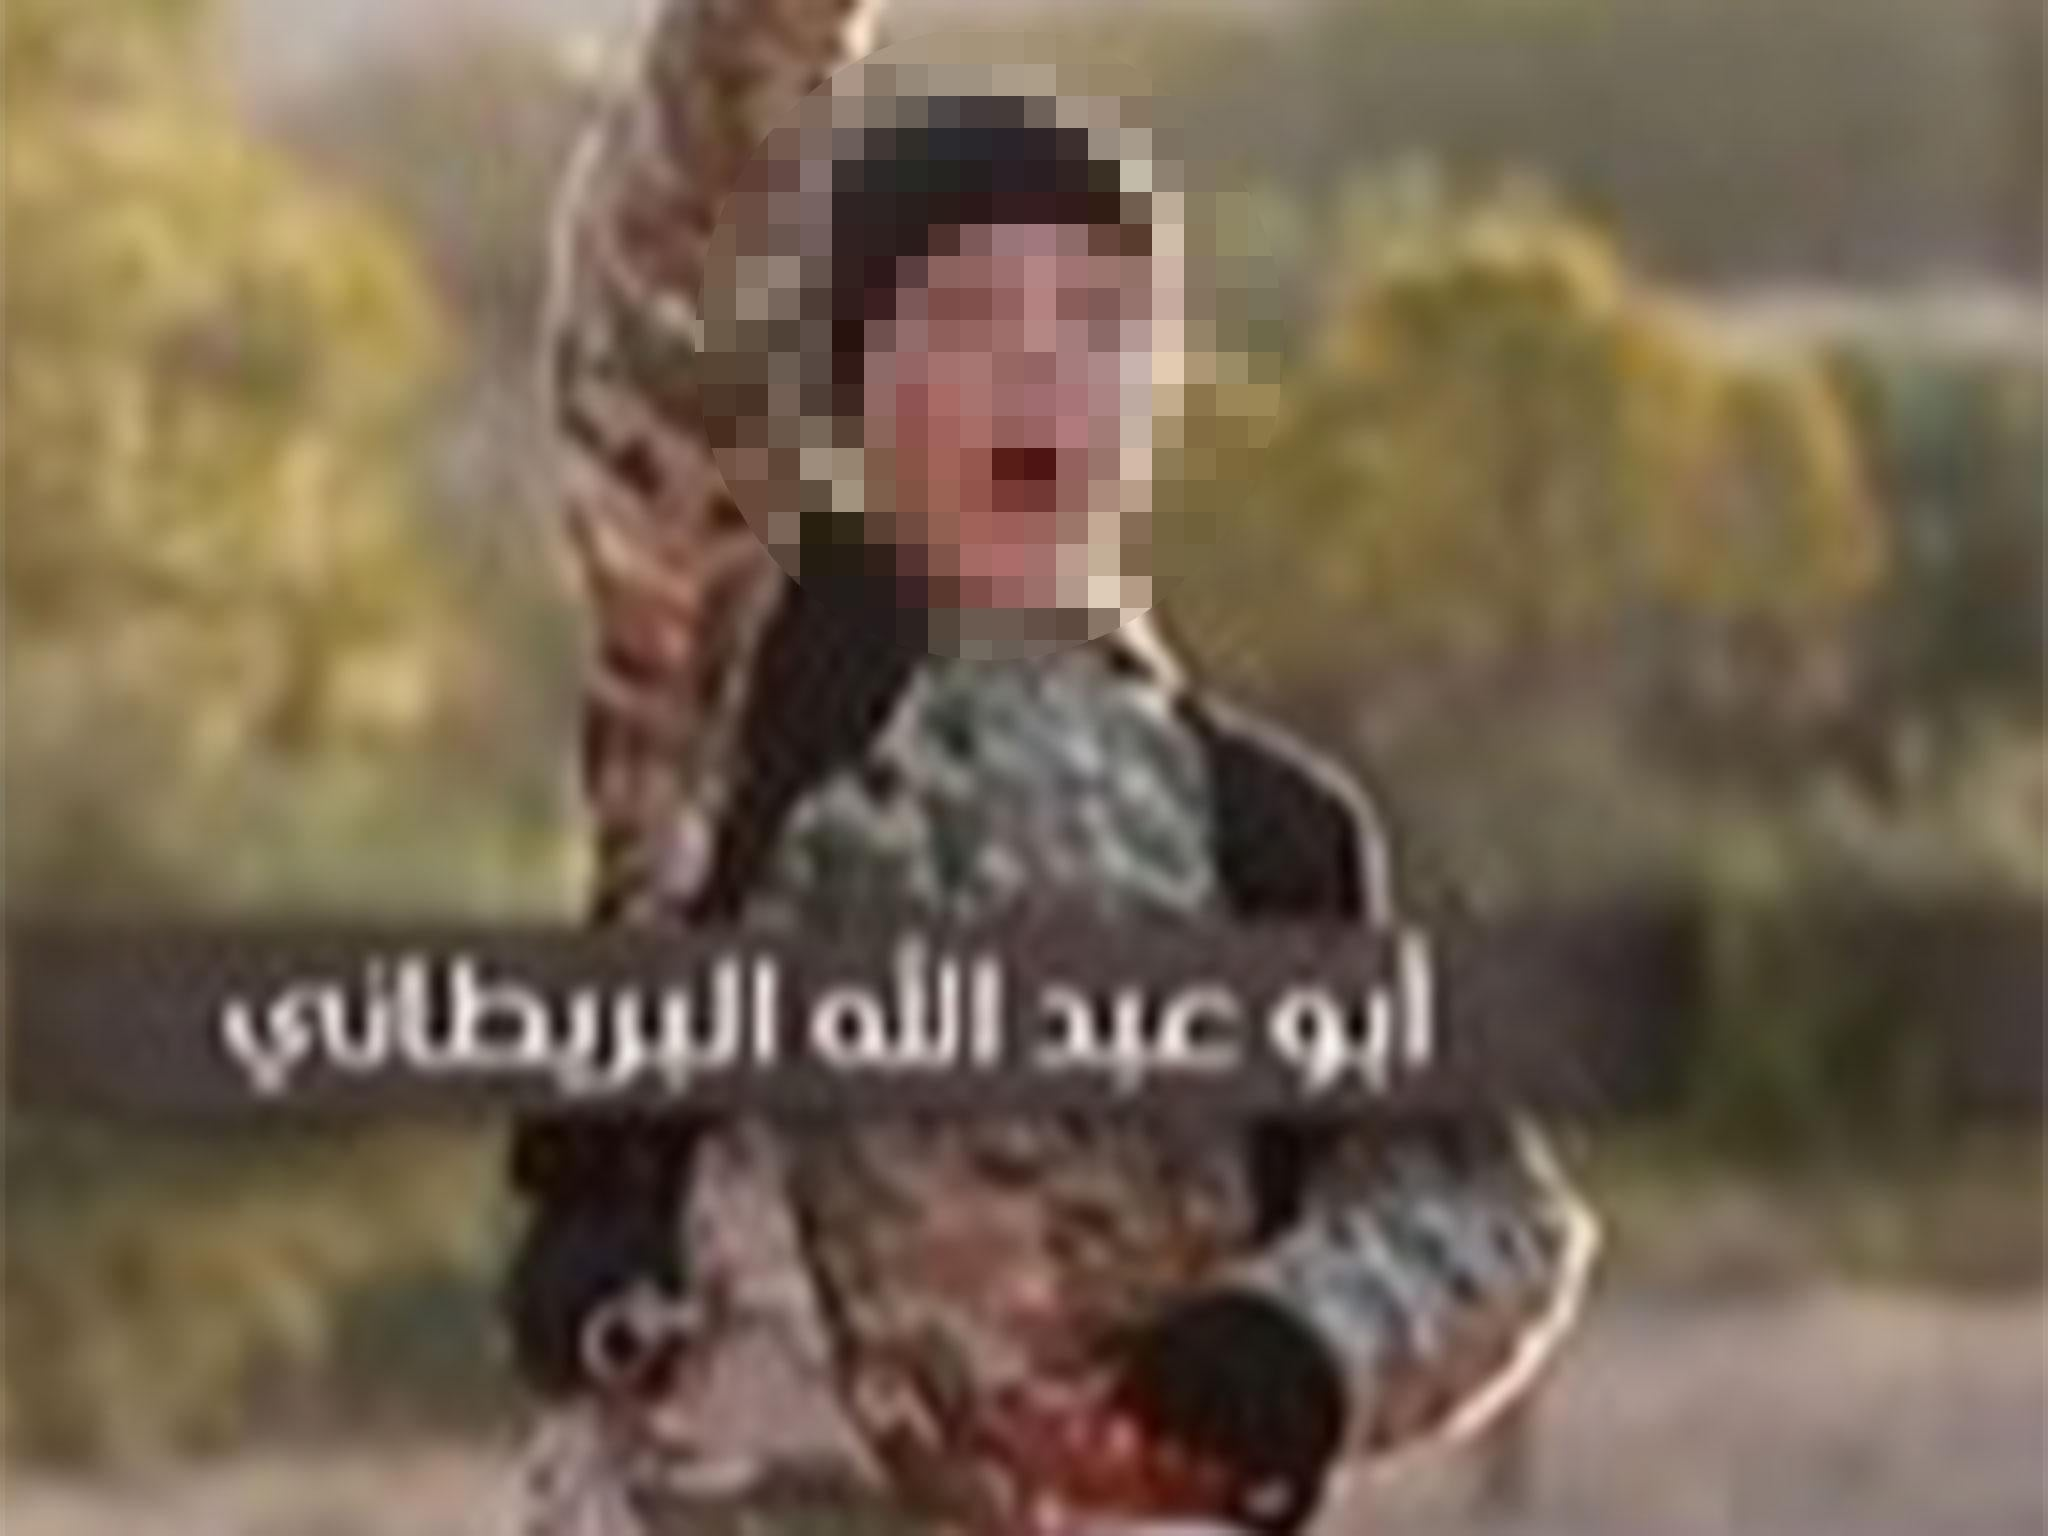 Isis execution video: British boy filmed executing man identified by